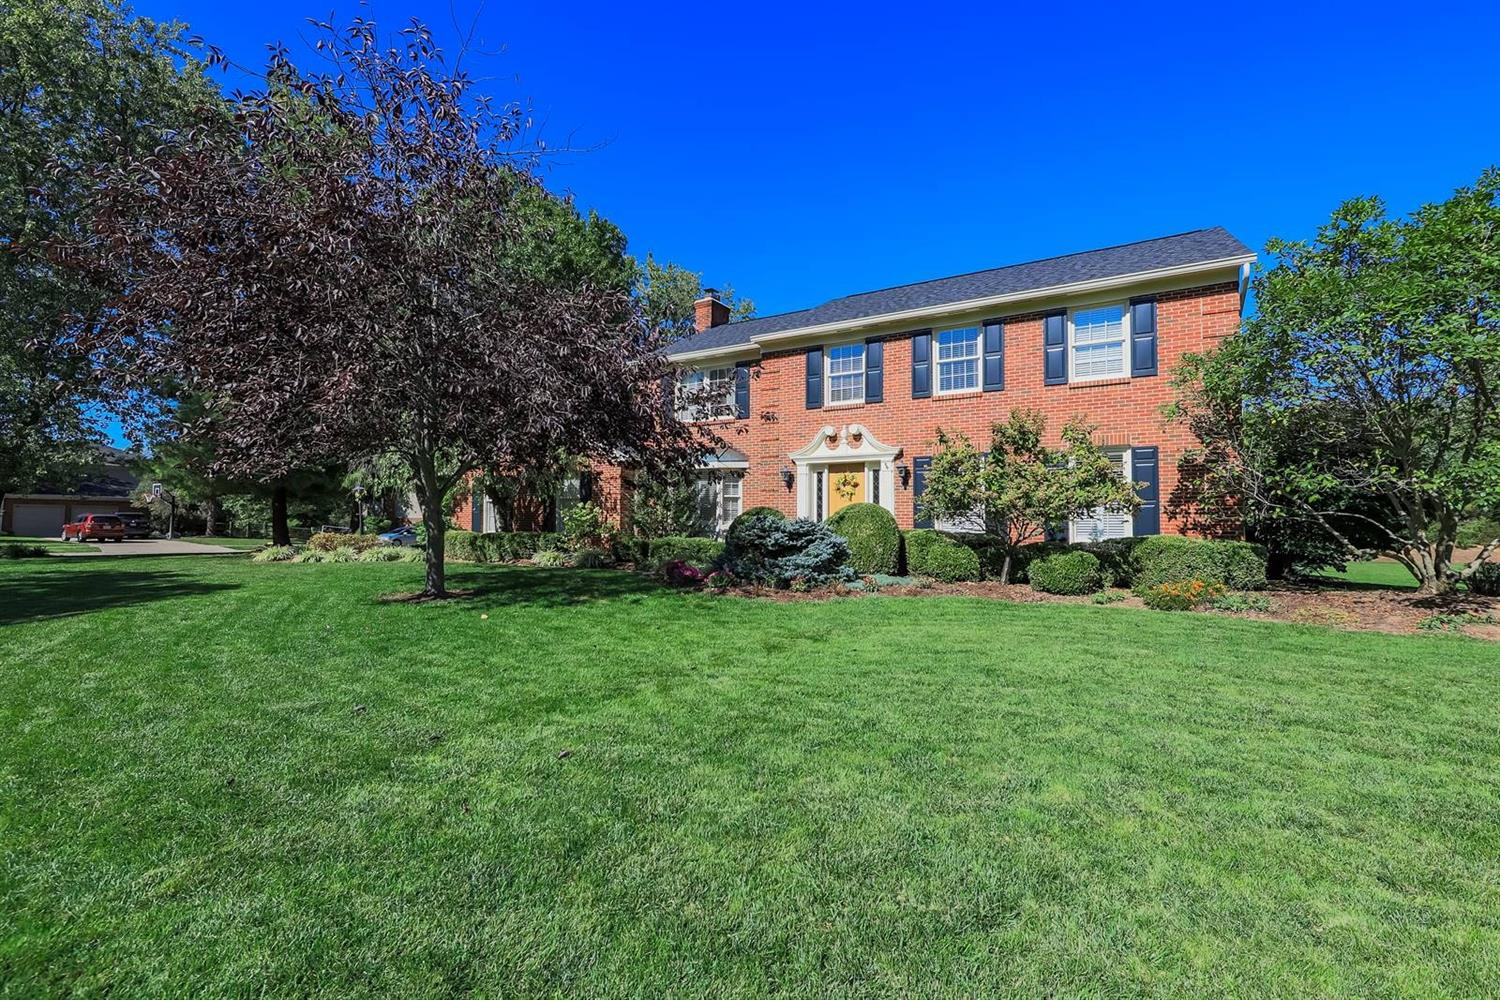 5880 Windsong Court, Madeira, Ohio 45243, 4 Bedrooms Bedrooms, 9 Rooms Rooms,2 BathroomsBathrooms,Single Family Residence,For Sale,Windsong,1719523